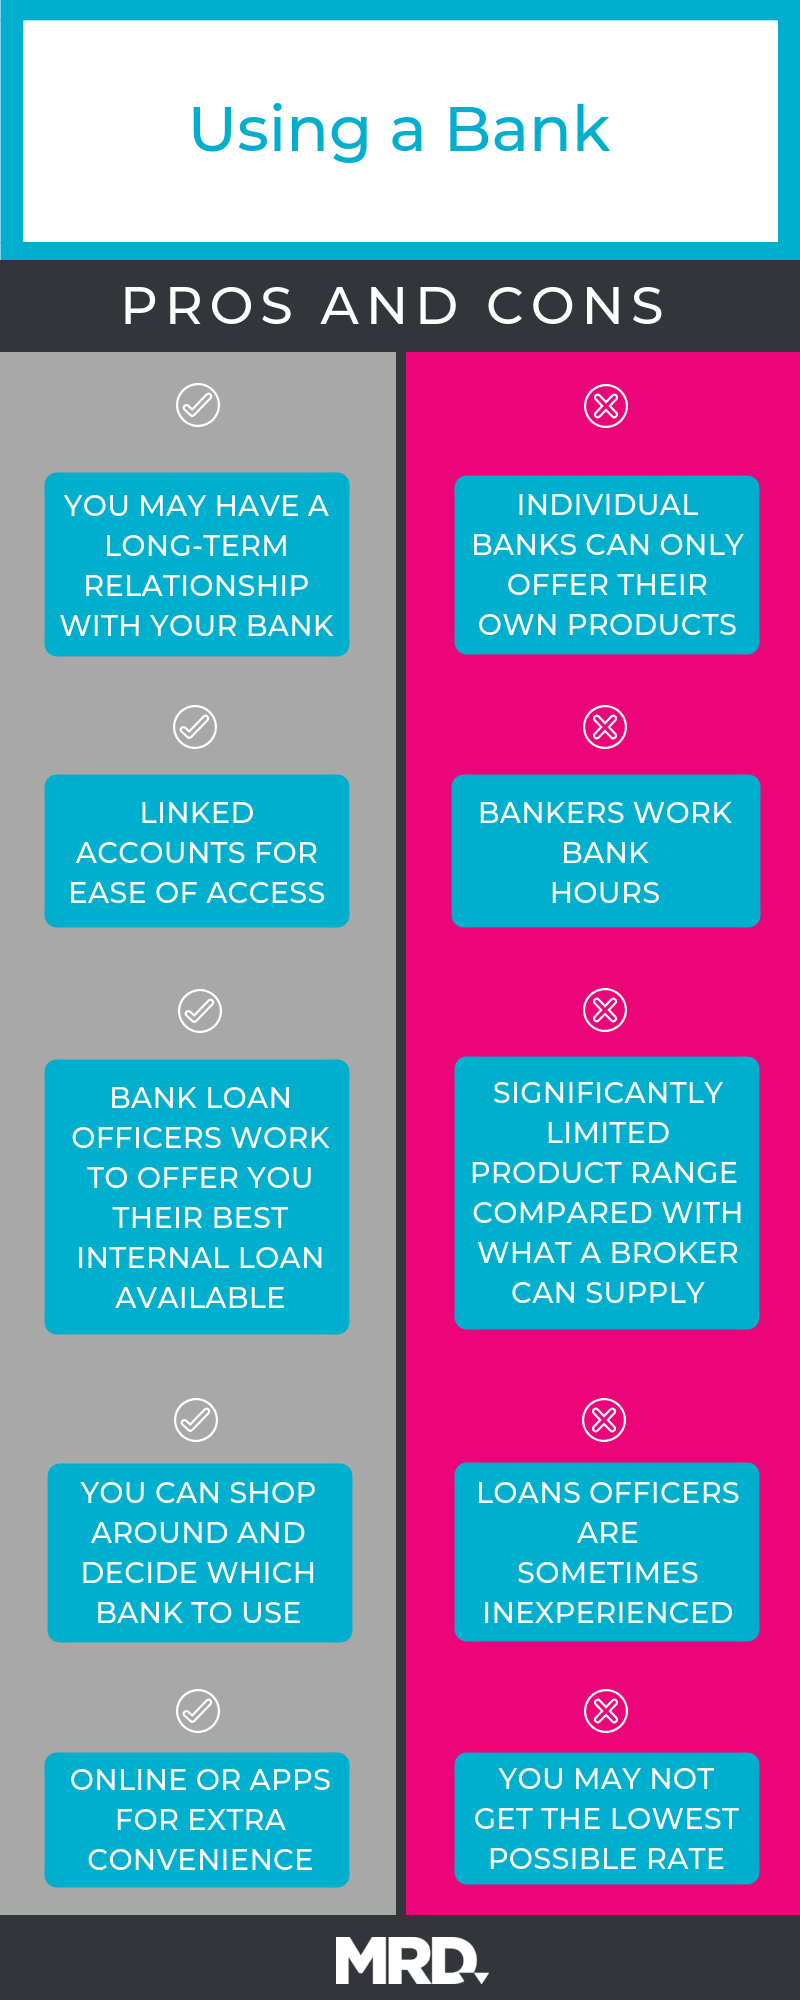 pros and cons of banks